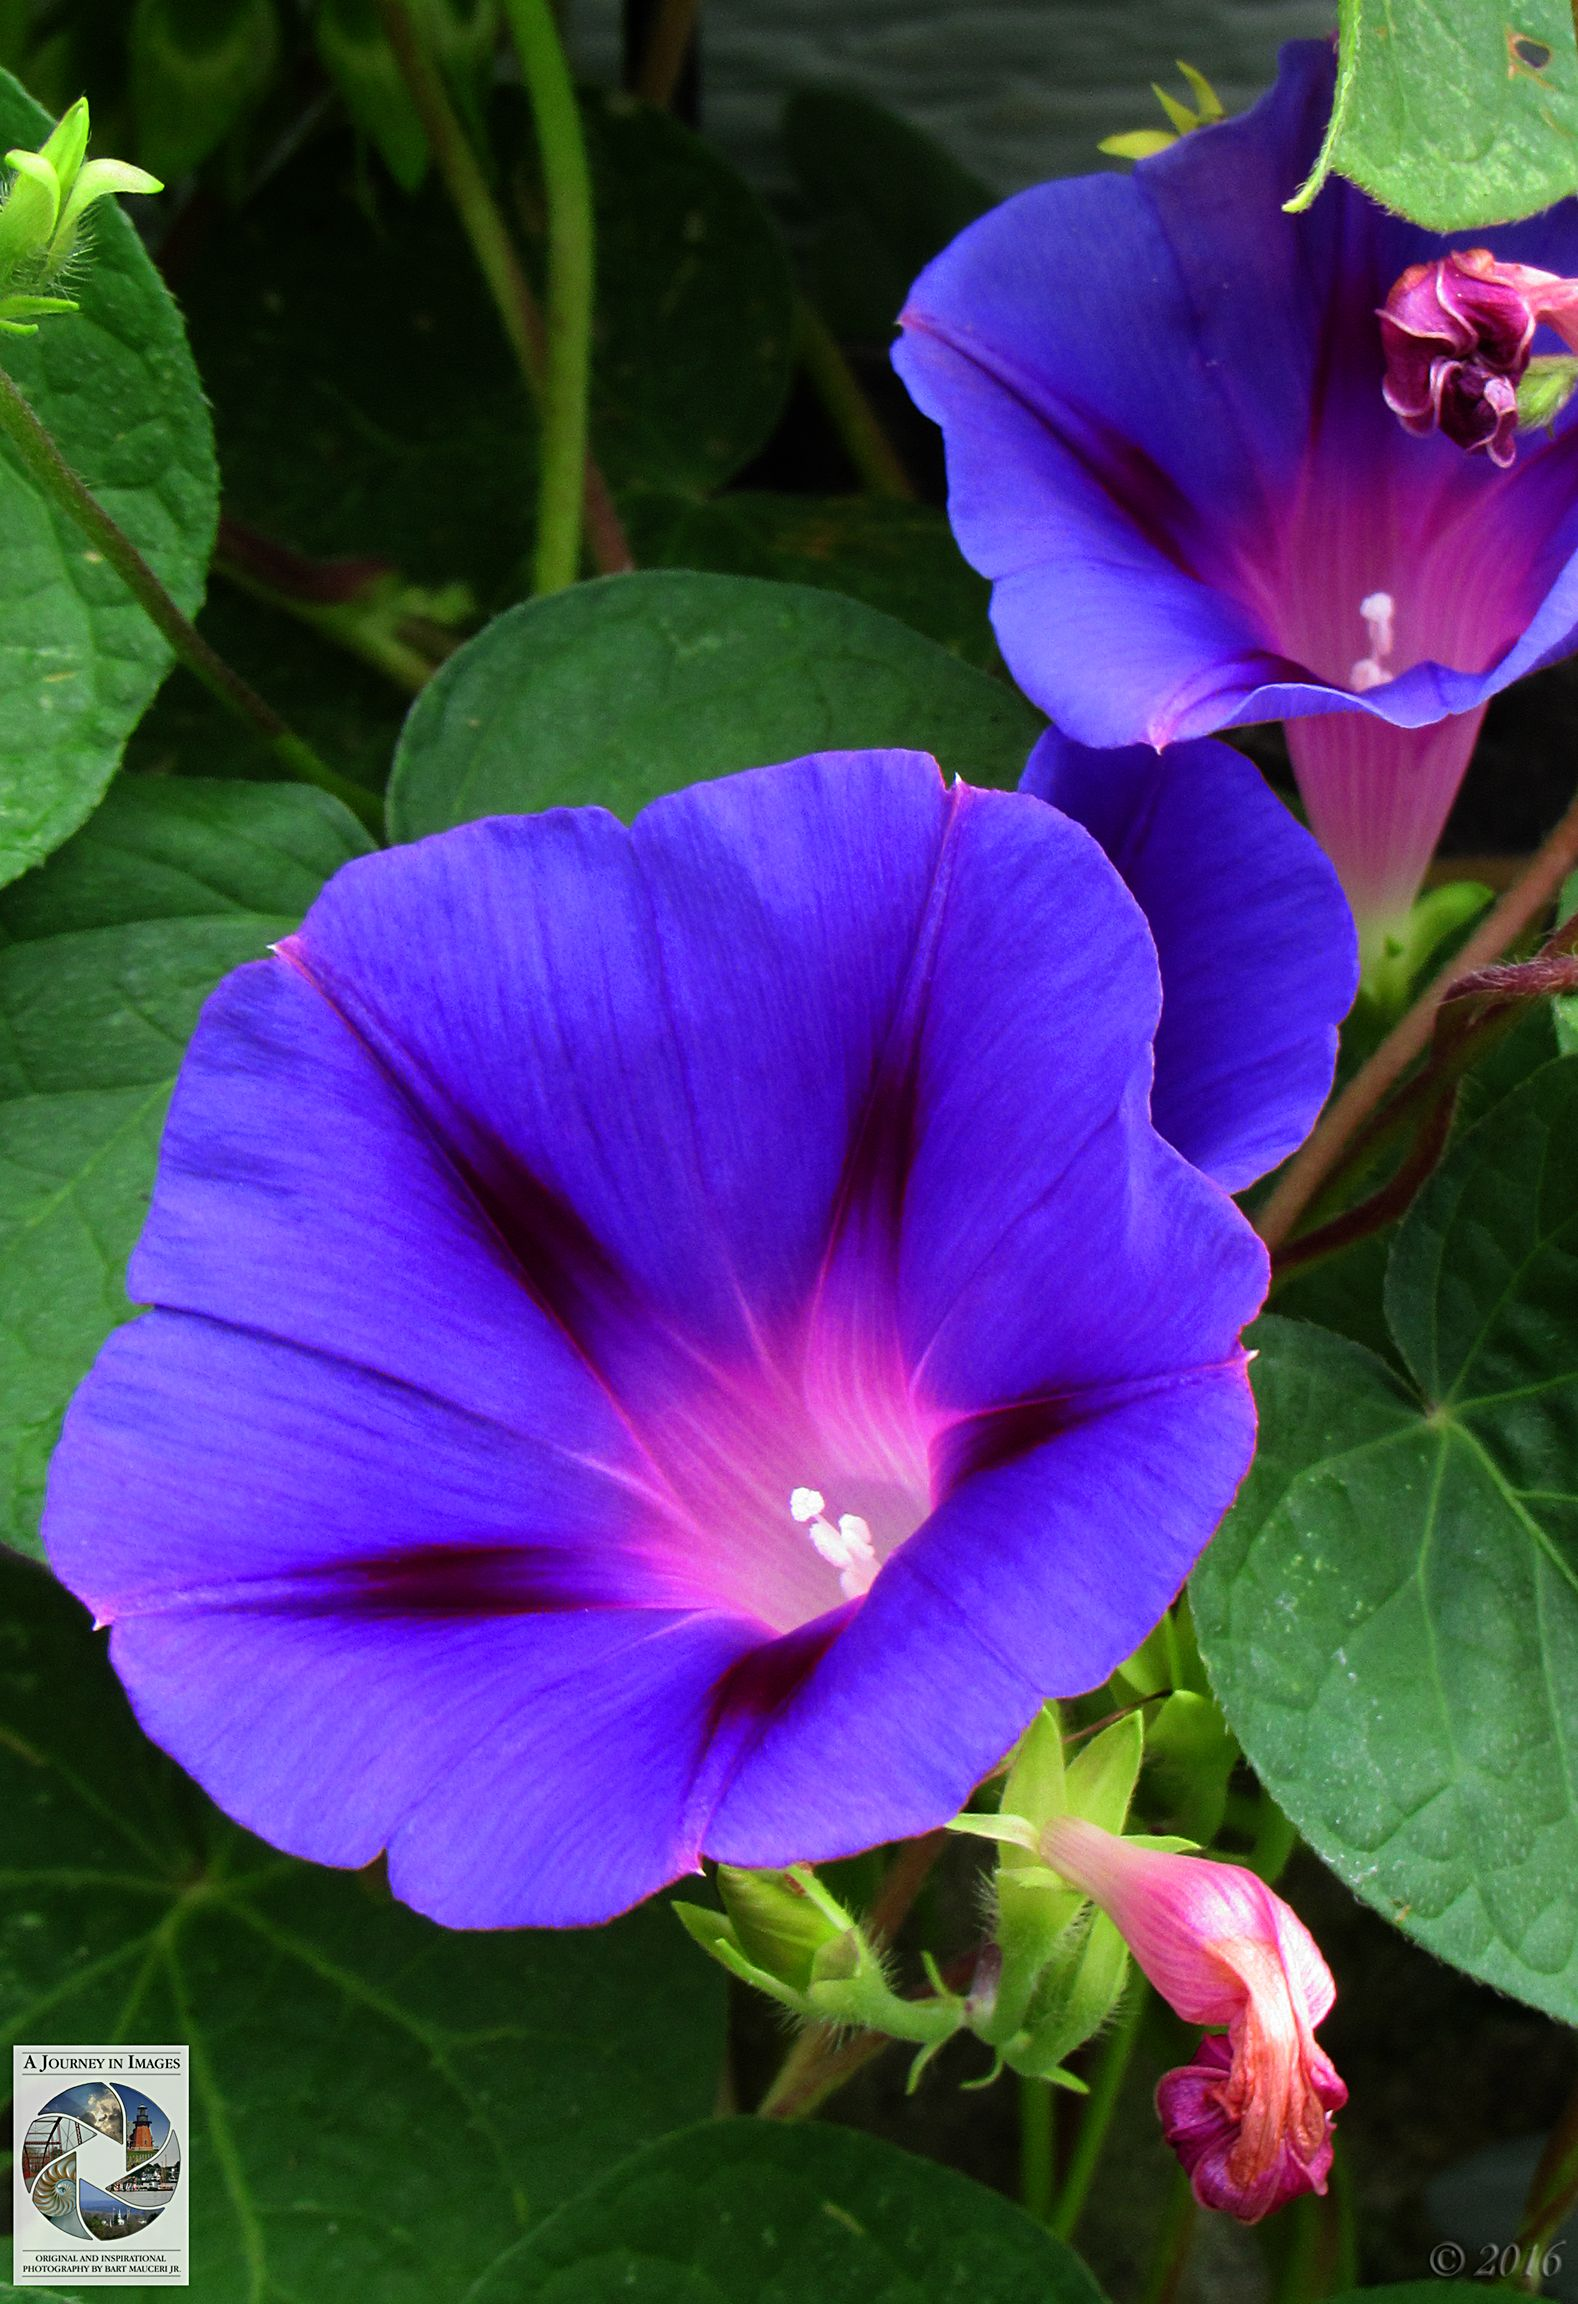 Morning Glories Ajourneyinimages Beinspired Photography Morning Glory Photography Flowers